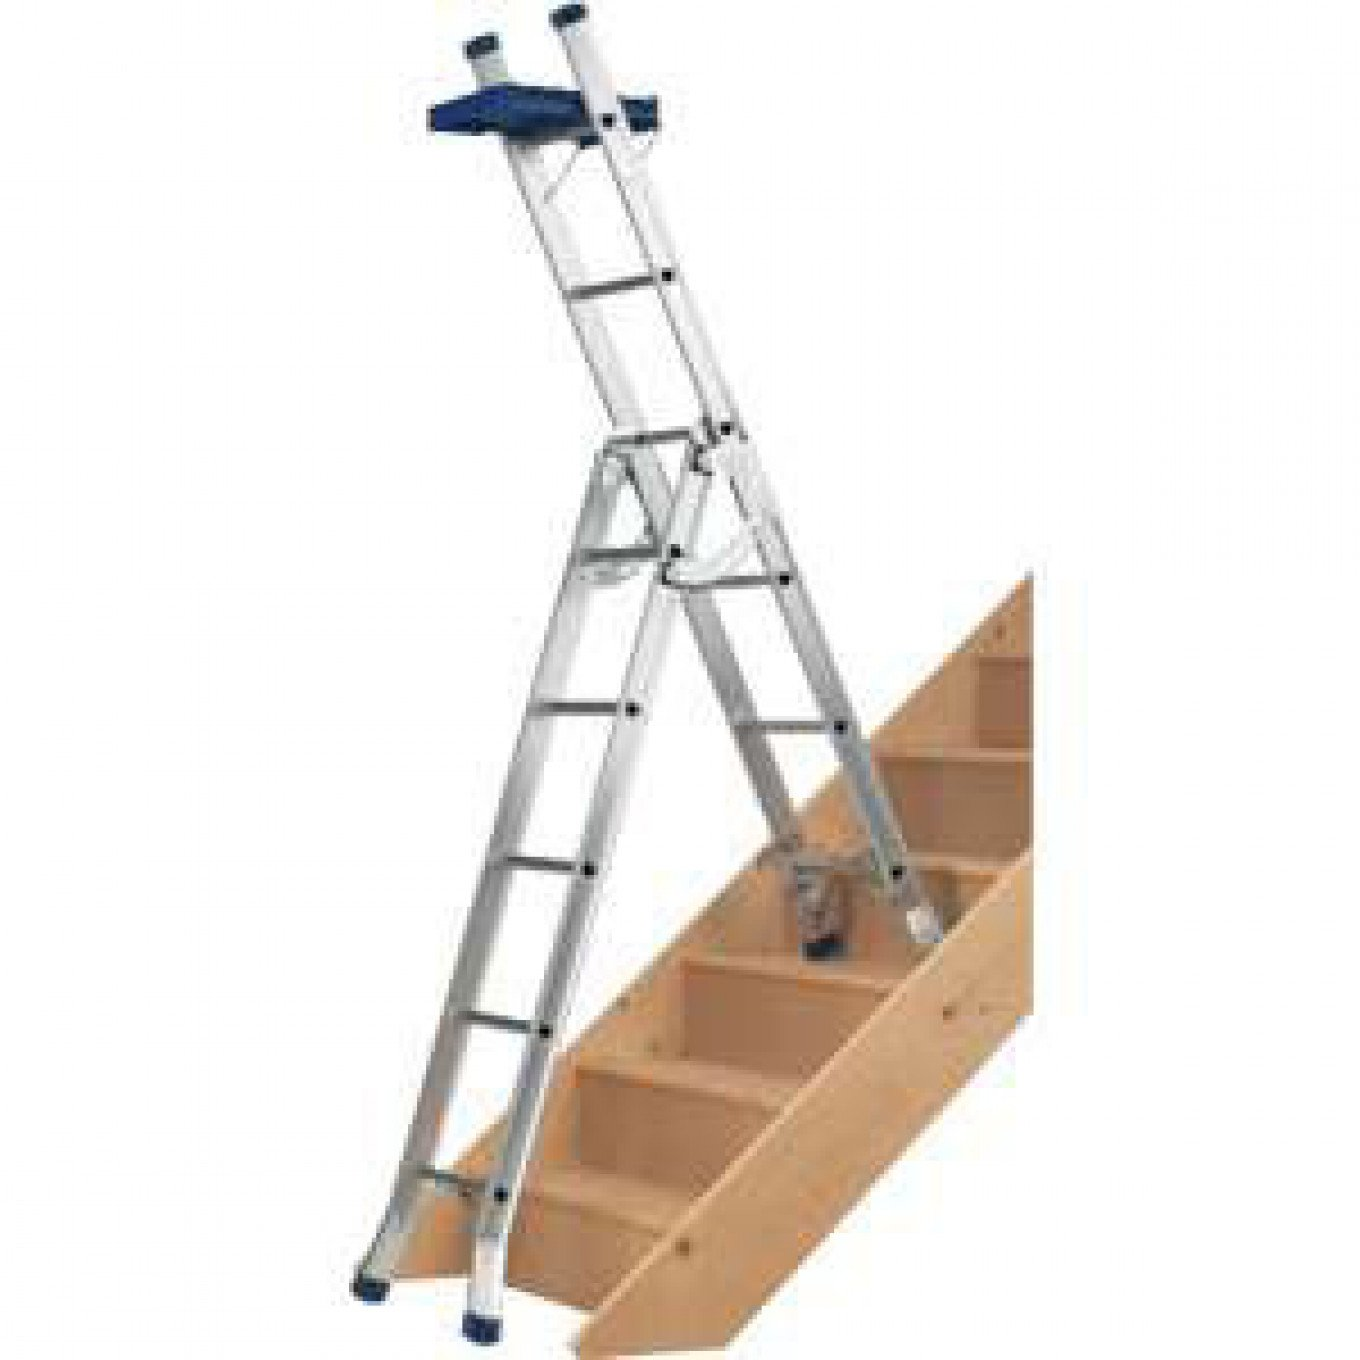 Lovely Werner Blue Seal 3 Way Combi Ladders   Combination Ladders For Use On  Stairs   Combination Ladders   Ladders Ladderstore.com